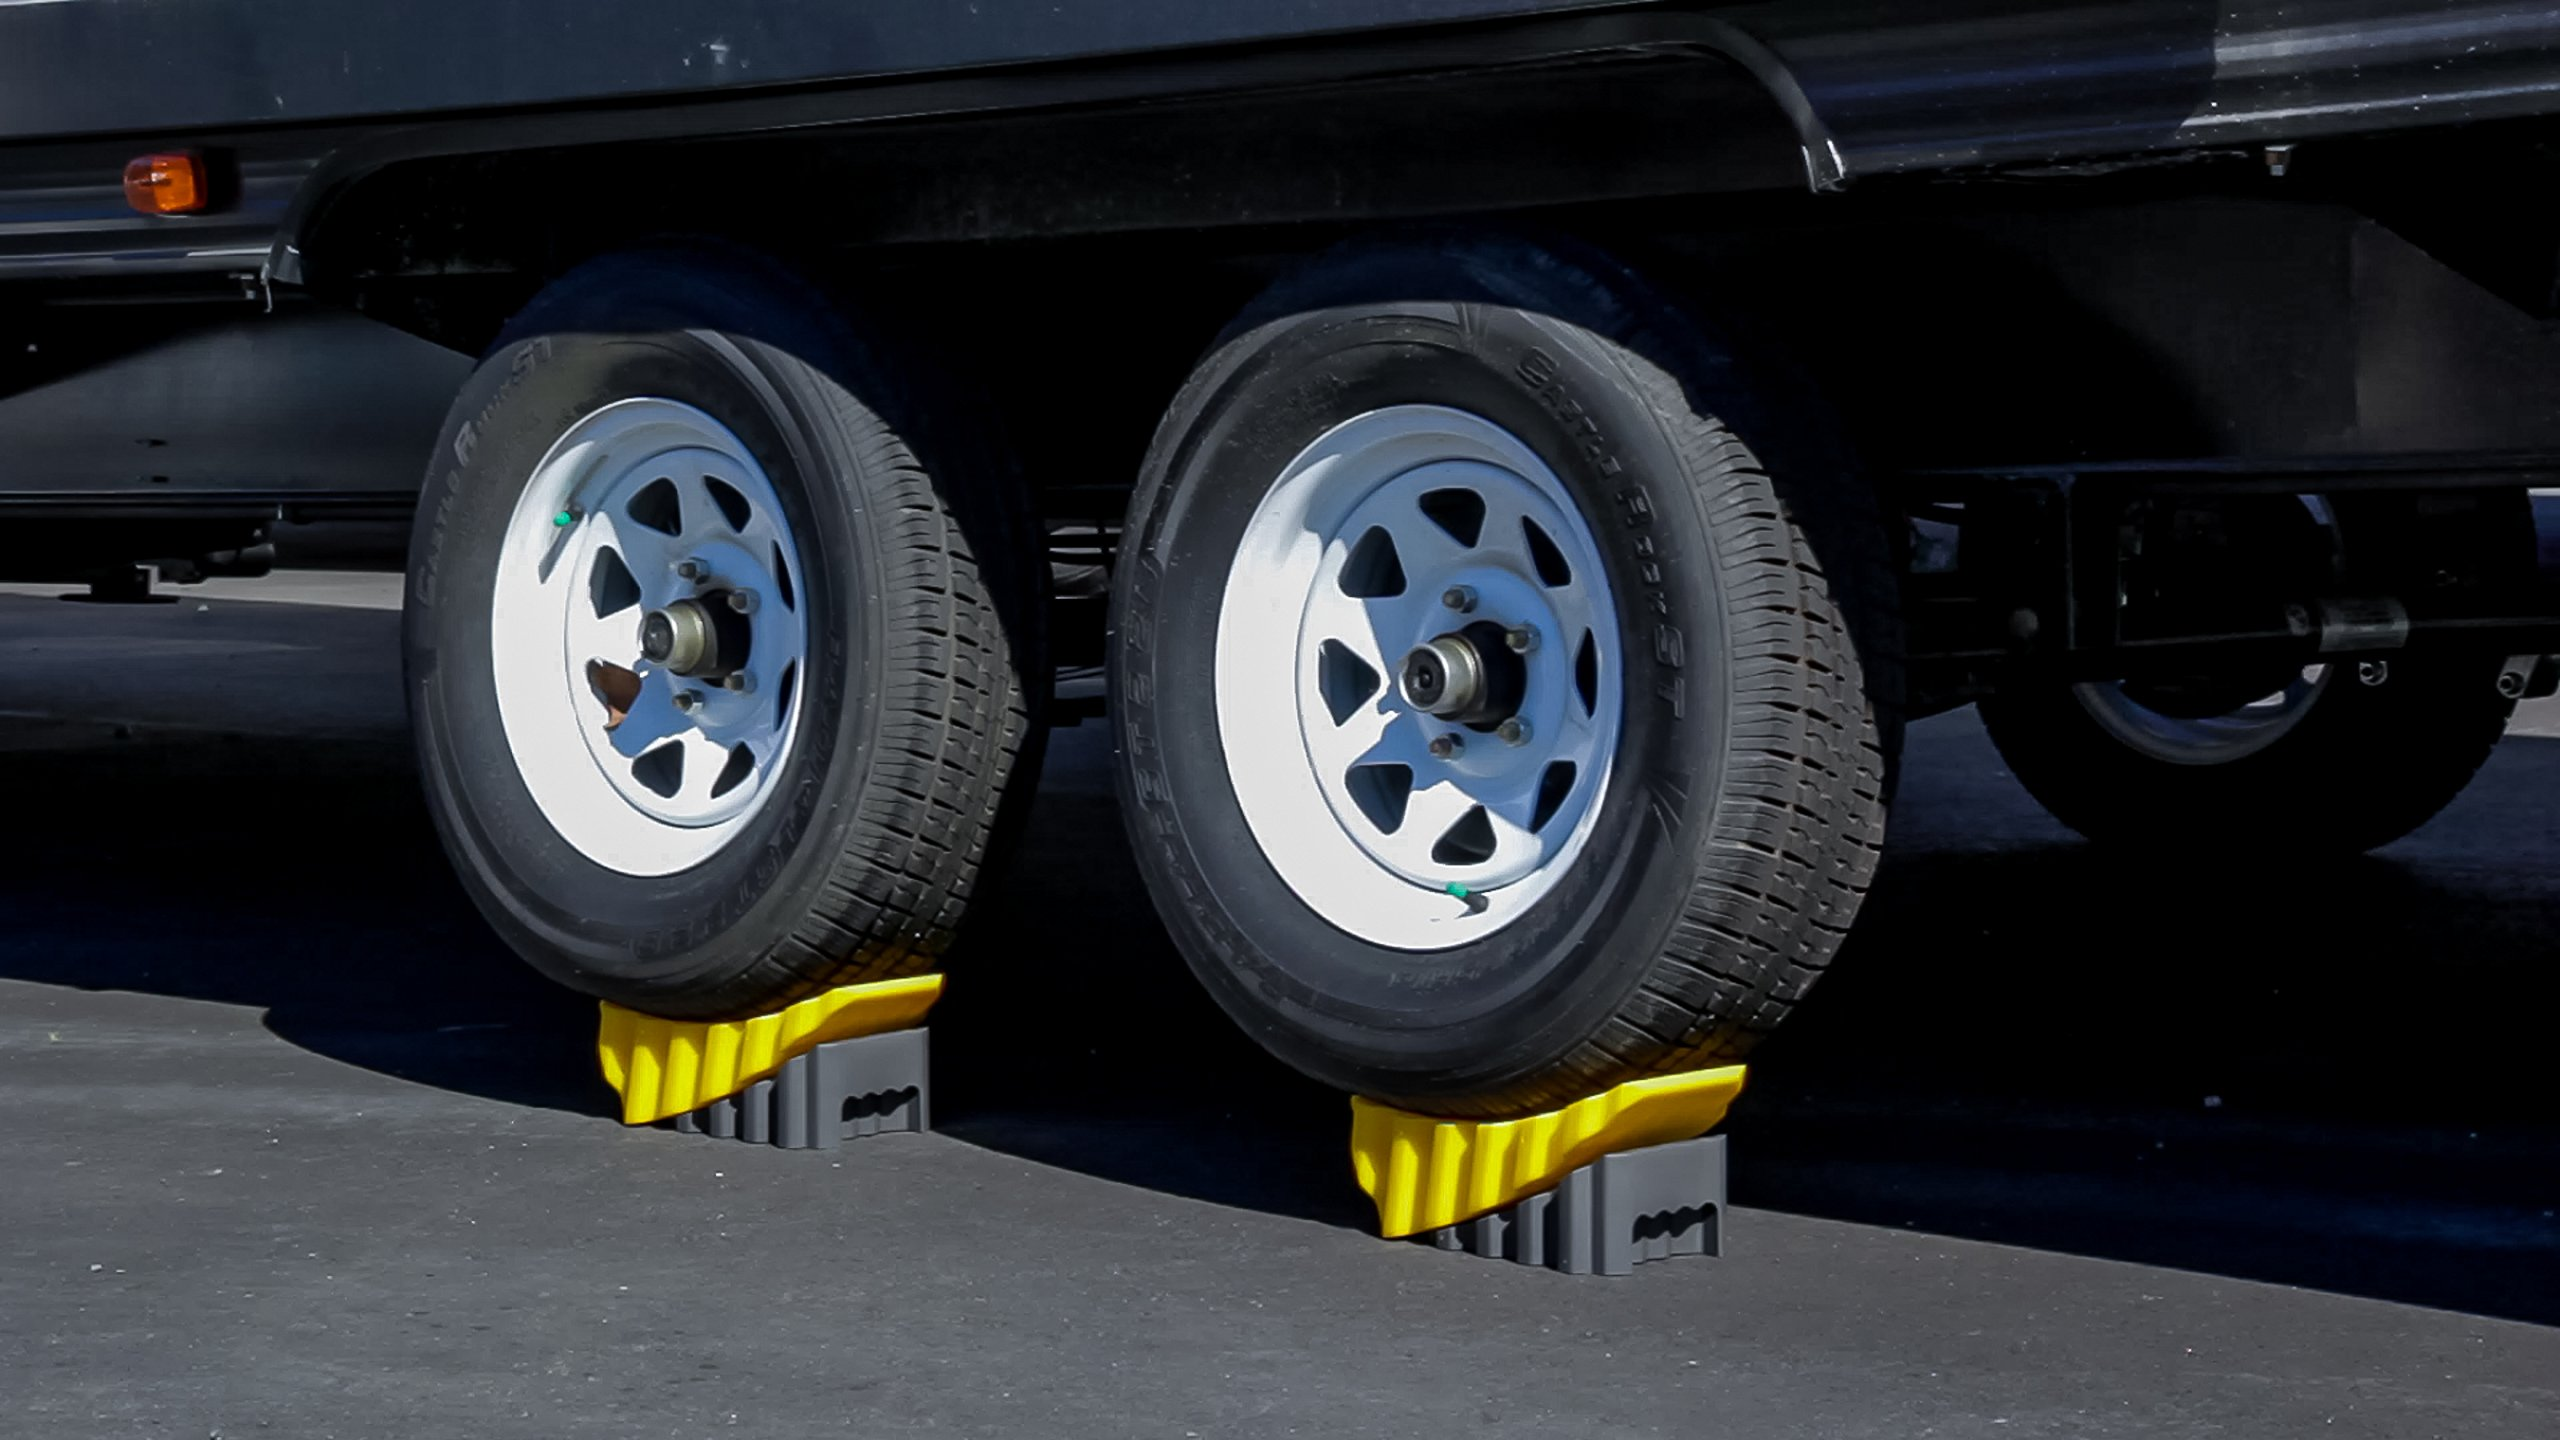 Camco RV Curved Leveler with Chock - 2 Pack - Easy Drive-on Leveler Adds Up to 4'' in Height (44425) by Camco (Image #4)